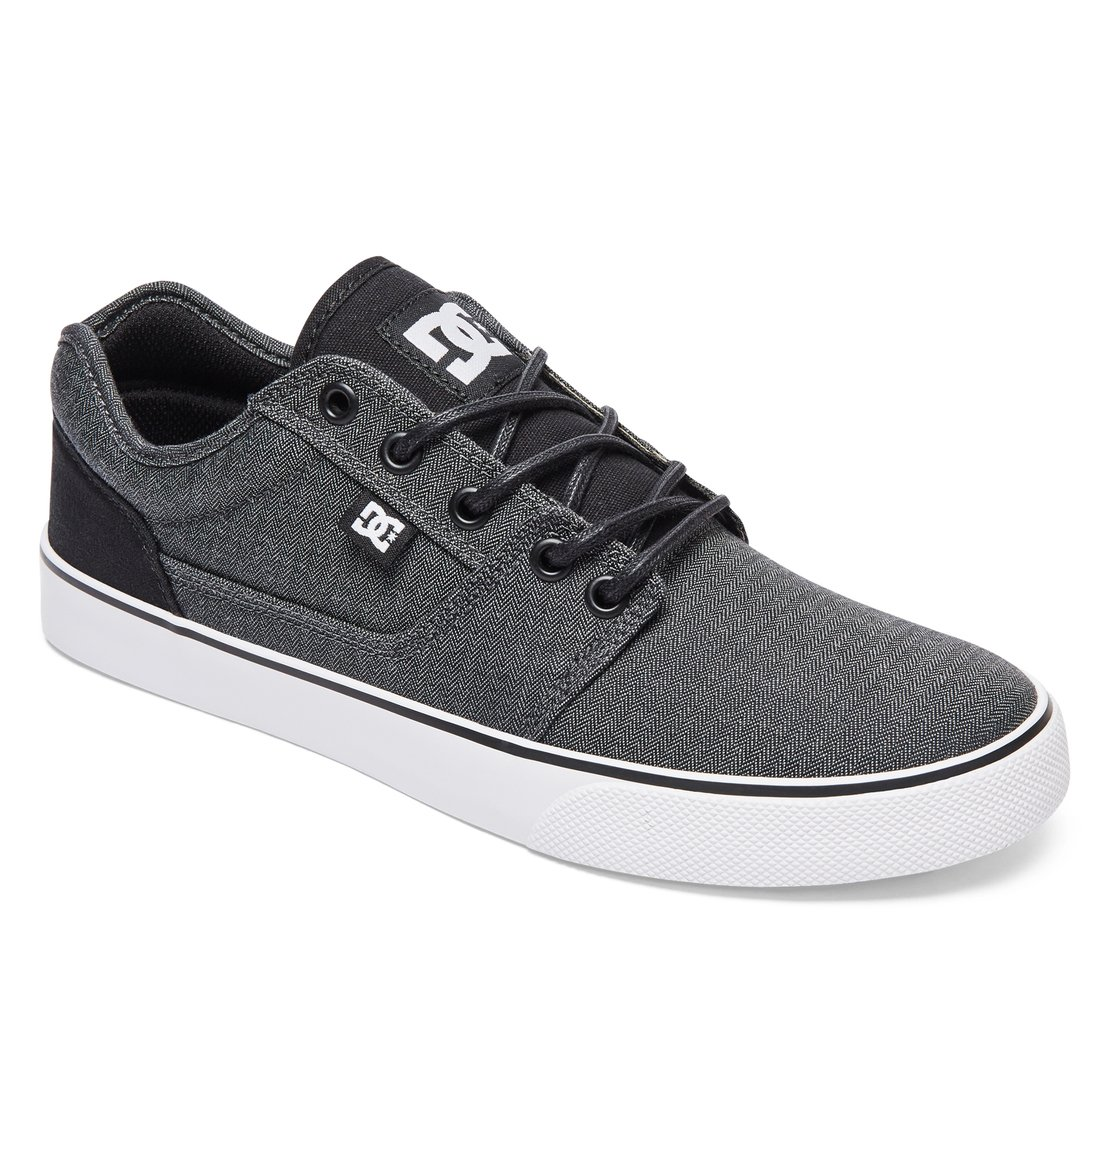 Tonik TX SE Sneakers grey / white DC